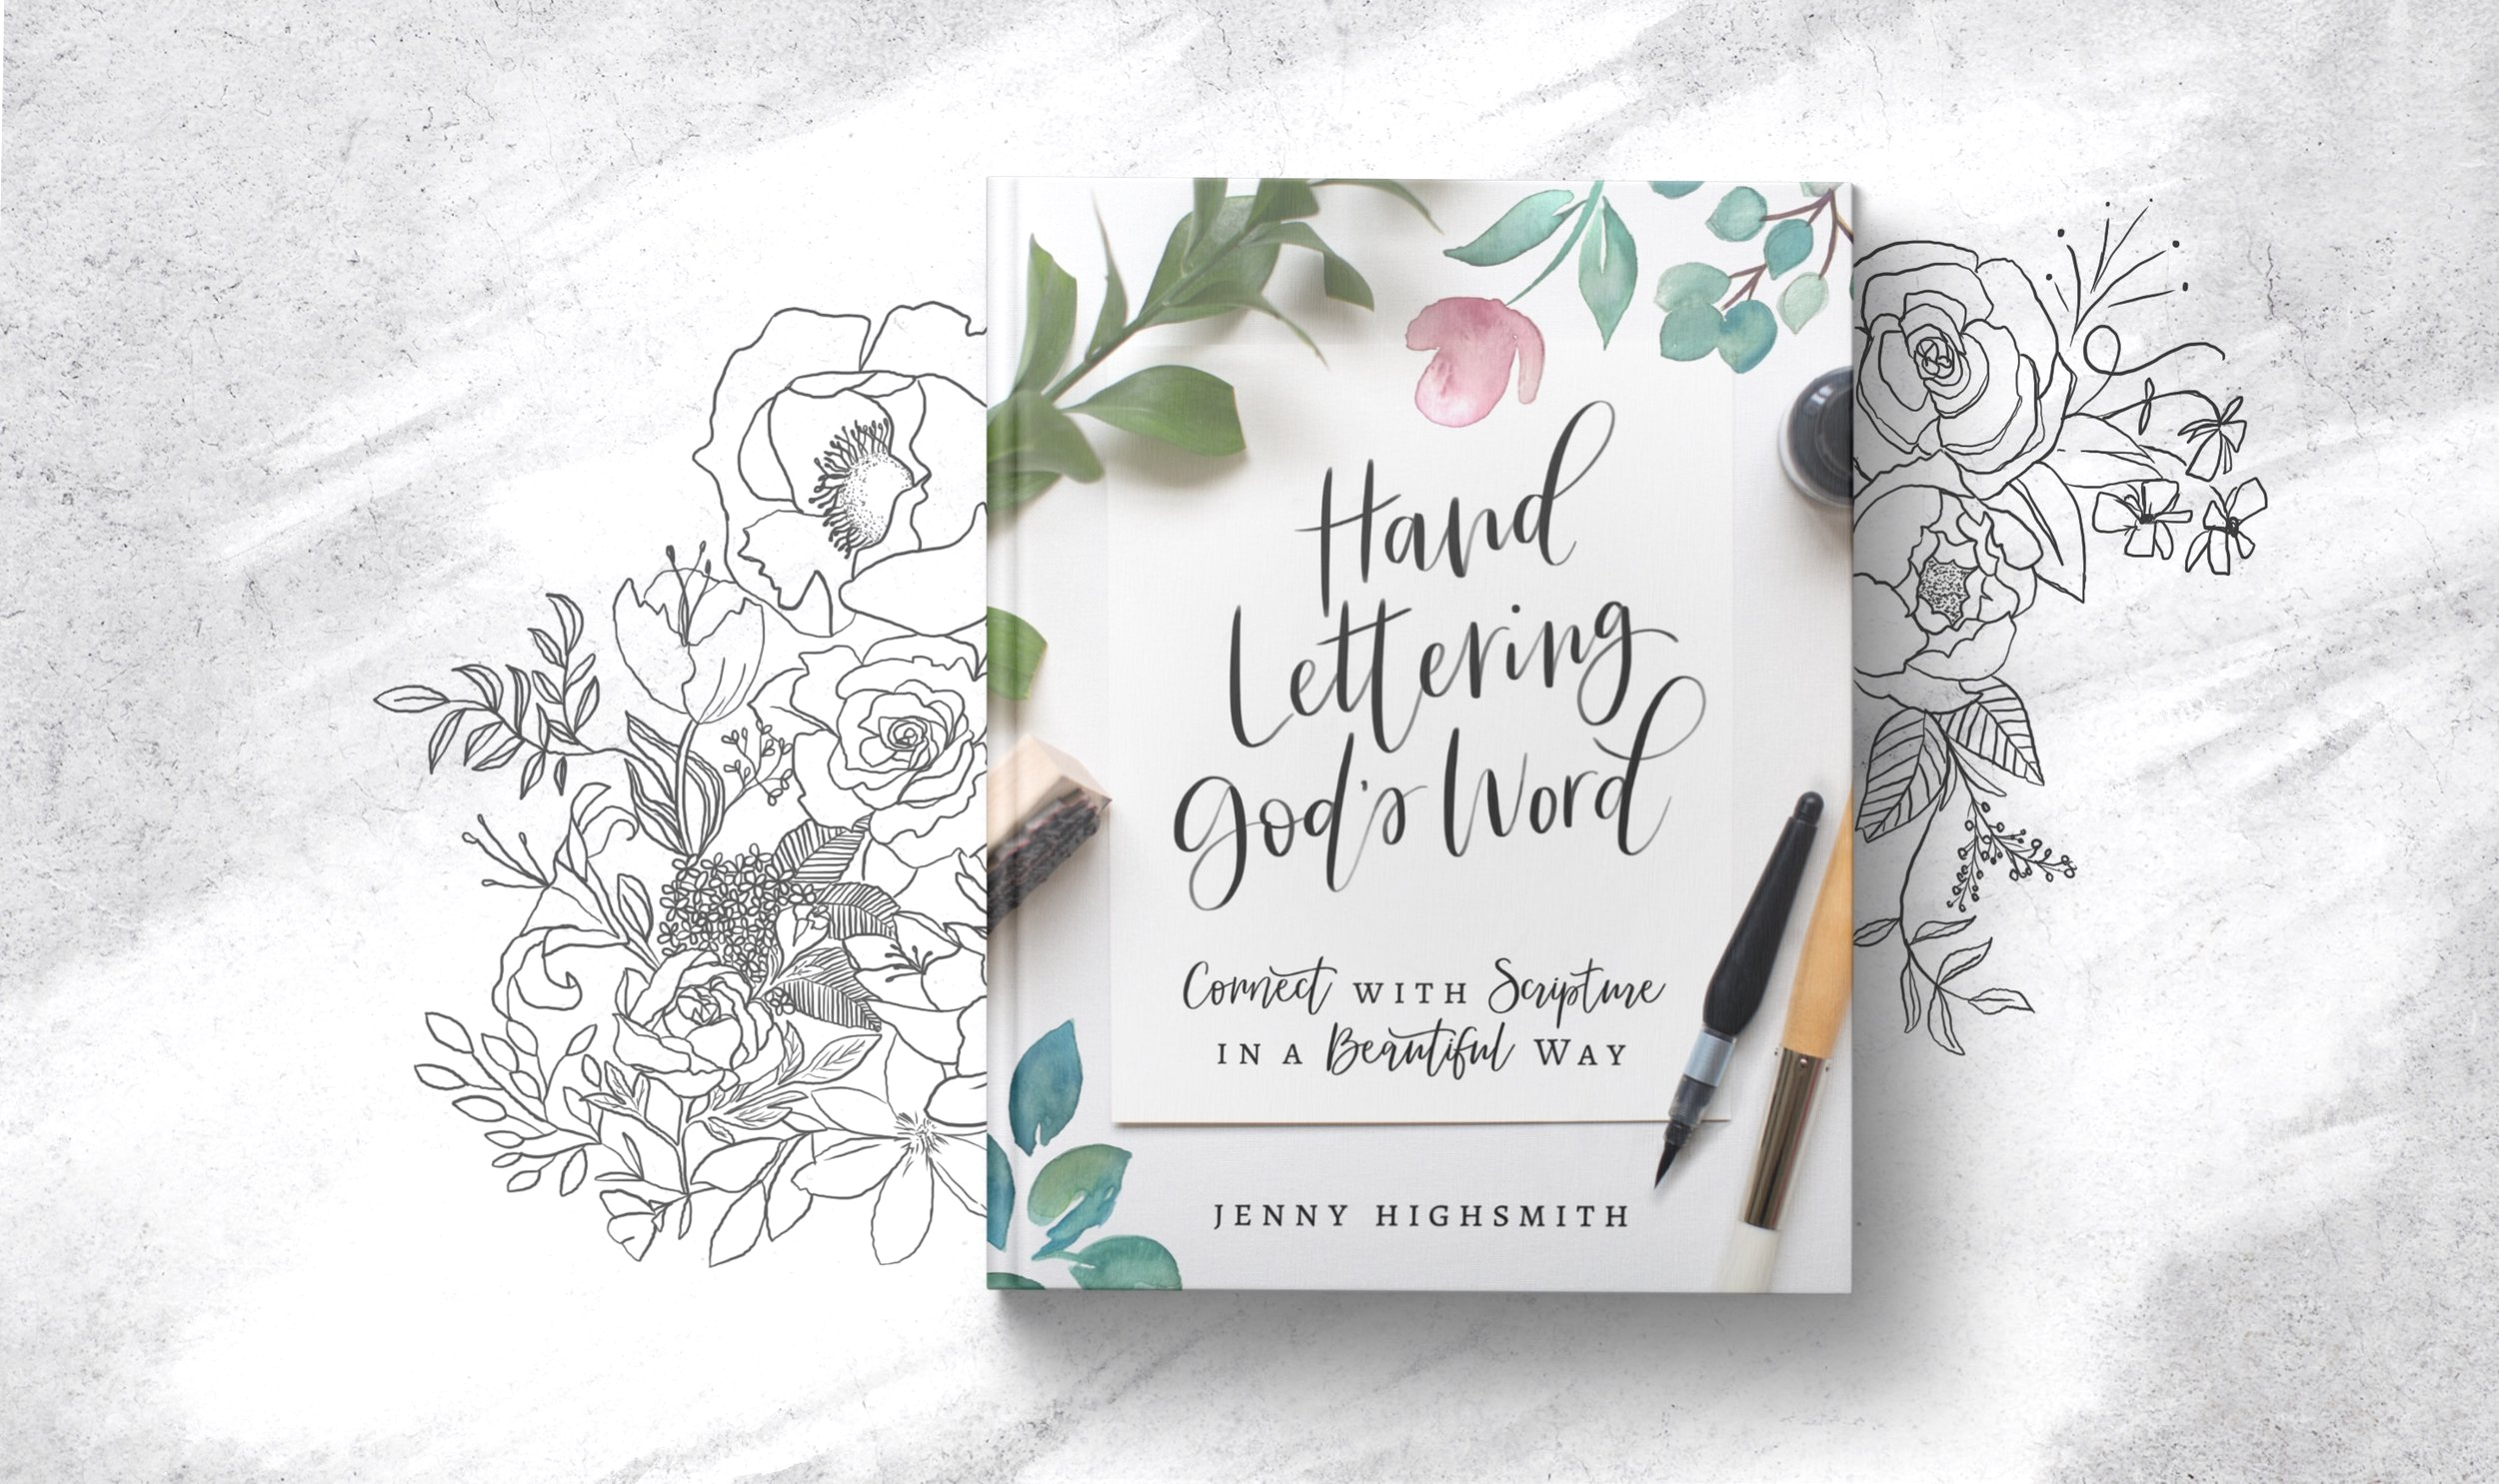 Hand lettering god's wordcoming soon! - Christian women are looking for books and resources to help them feel creative and, also, express their faith. Hand Lettering God's Word accomplishes both.The book is divided into two sections - the first section has a very practical, journal or workbook-like feel, teaching you the basics of hand lettering. Included are chapters on tools and resources, the basic strokes, and how to develop your own style. After completing this section, we hope you feel that you, too, can hand letter, even if you don't feel naturally gifted.The second section of the book is a more in-depth look at each alphabet letter, paired with a Scripture and small devotional for you to meditate on. This section is meant to show you how to use your new skill as a means of committing God's word to memory. We know how powerful God's Word is, and memorizing Scripture has many benefits including changing the desires of our hearts, fighting temptation, giving us direction, allowing us to share the gospel, giving us a weapon against spiritual warfare, and more powerful prayers.Perfect for solo practice or a nice small group study, this book is a wonderful way to grow closer to the Lord as you channel your creativity. You might even find it's a journey you would like to have together with other Christian women wanting to learn to hand-letter in a group, while also having accountability partners on Scripture memorization. You could encourage each other in both and have a new excitement for studying God's word.